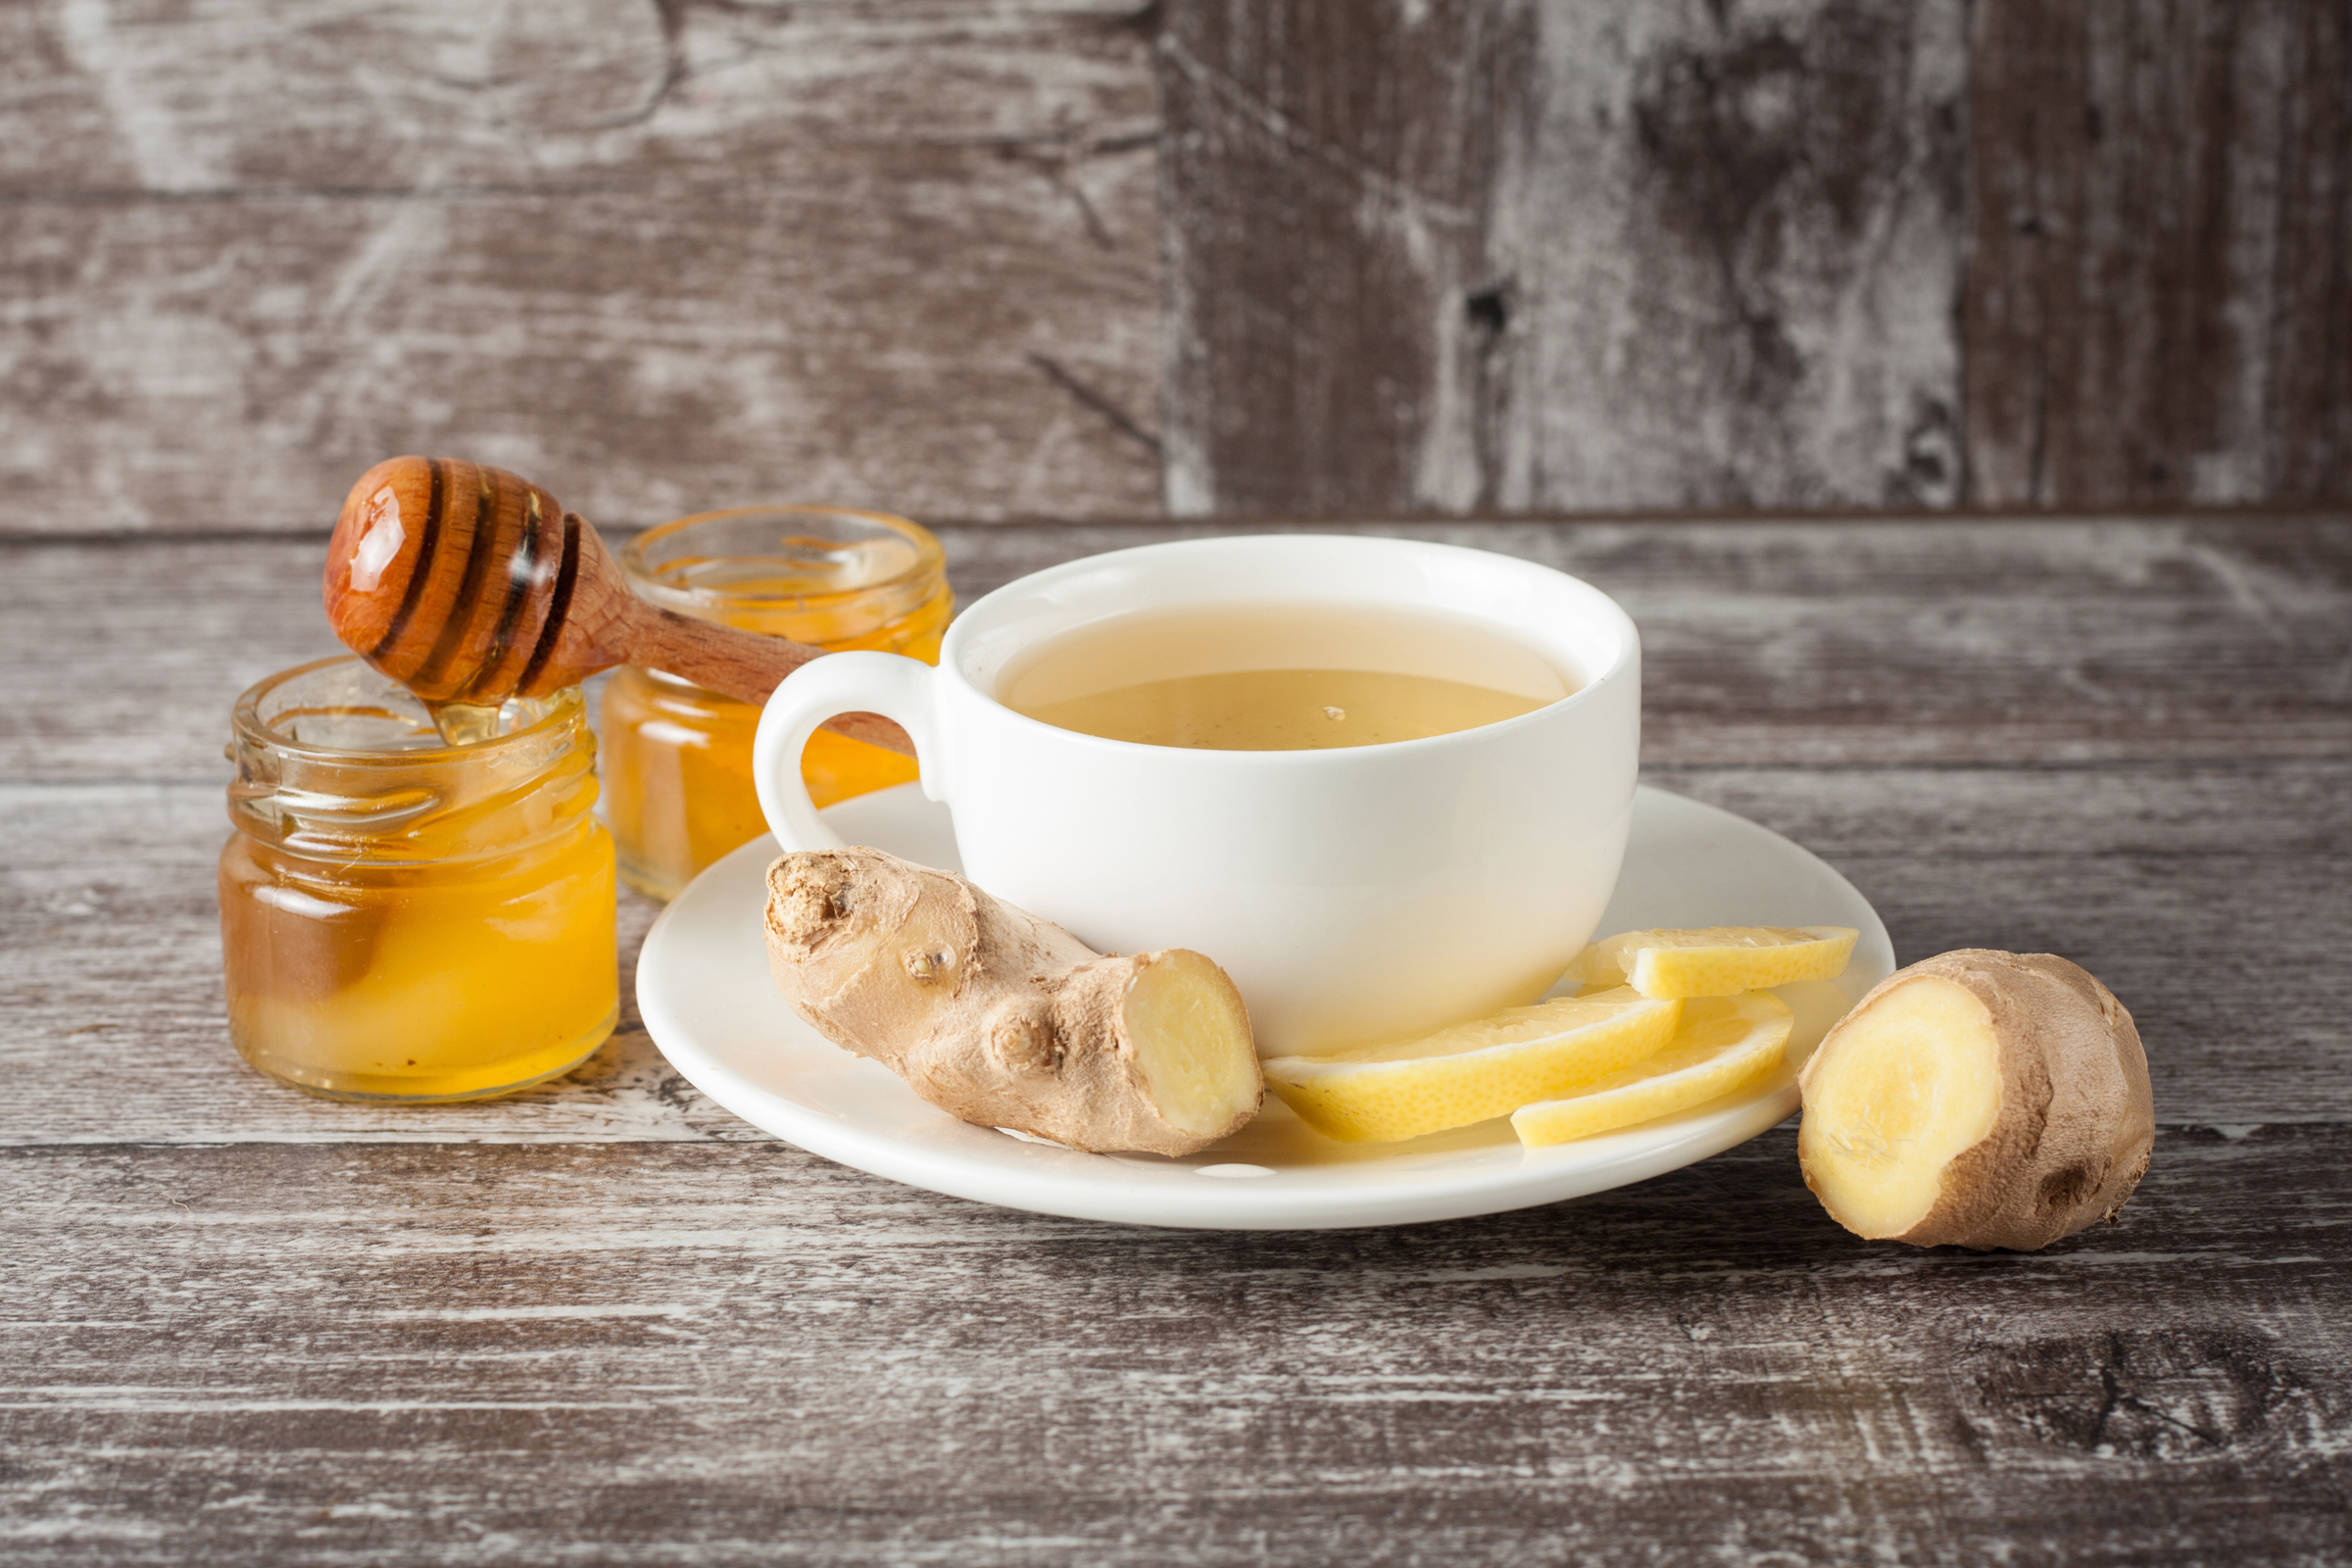 http://www.shutterstock.com/pic-332345660/stock-photo-a-white-cup-of-green-natural-tea-with-ginger-lemon-and-honey-on-wooden-rustic-background-healthy.html?src=UvaLLrjuu8mbTnIYccf9dQ-1-7